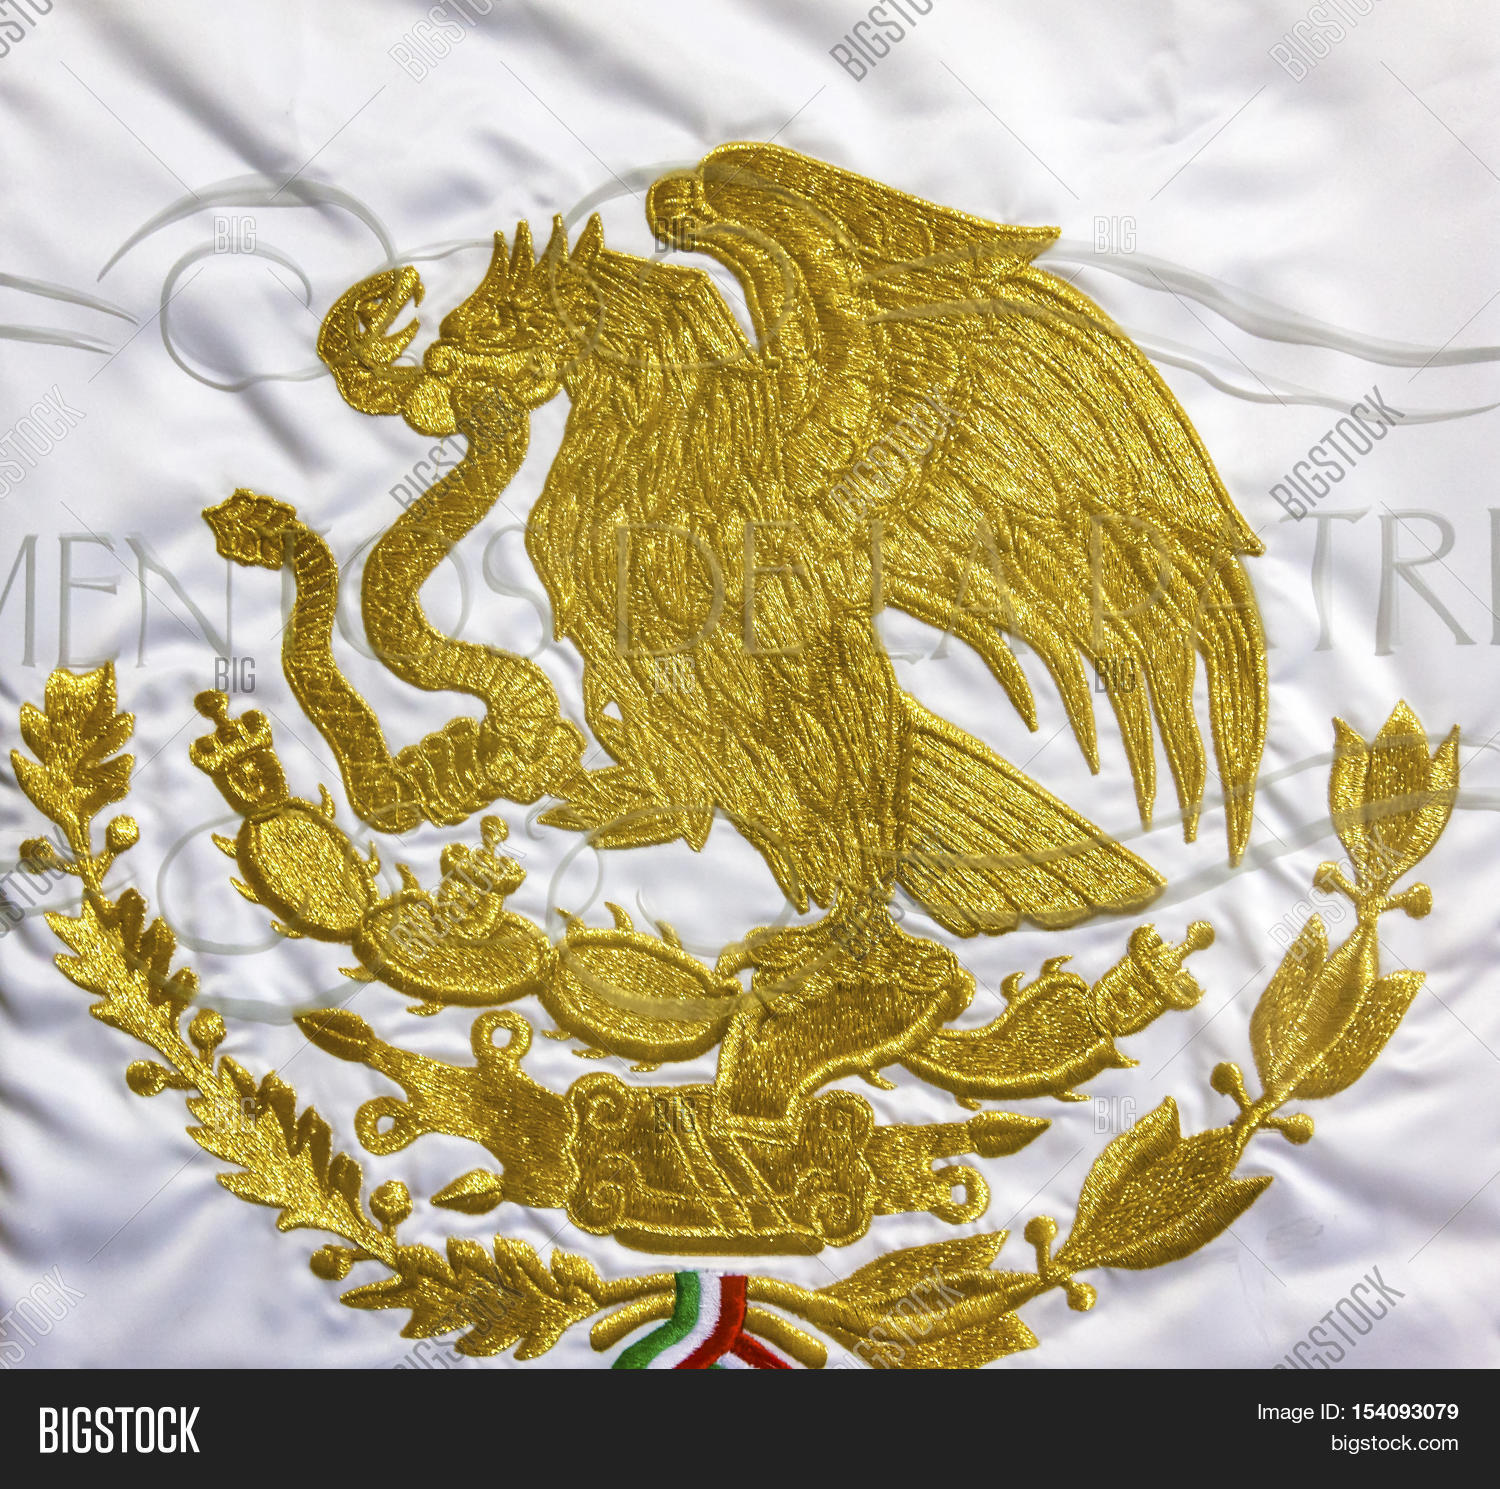 Guanajuato mexico december 31 image photo bigstock guanajuato mexico december 31 2014 mexican symbol on flag in independence museum alhondiga biocorpaavc Image collections